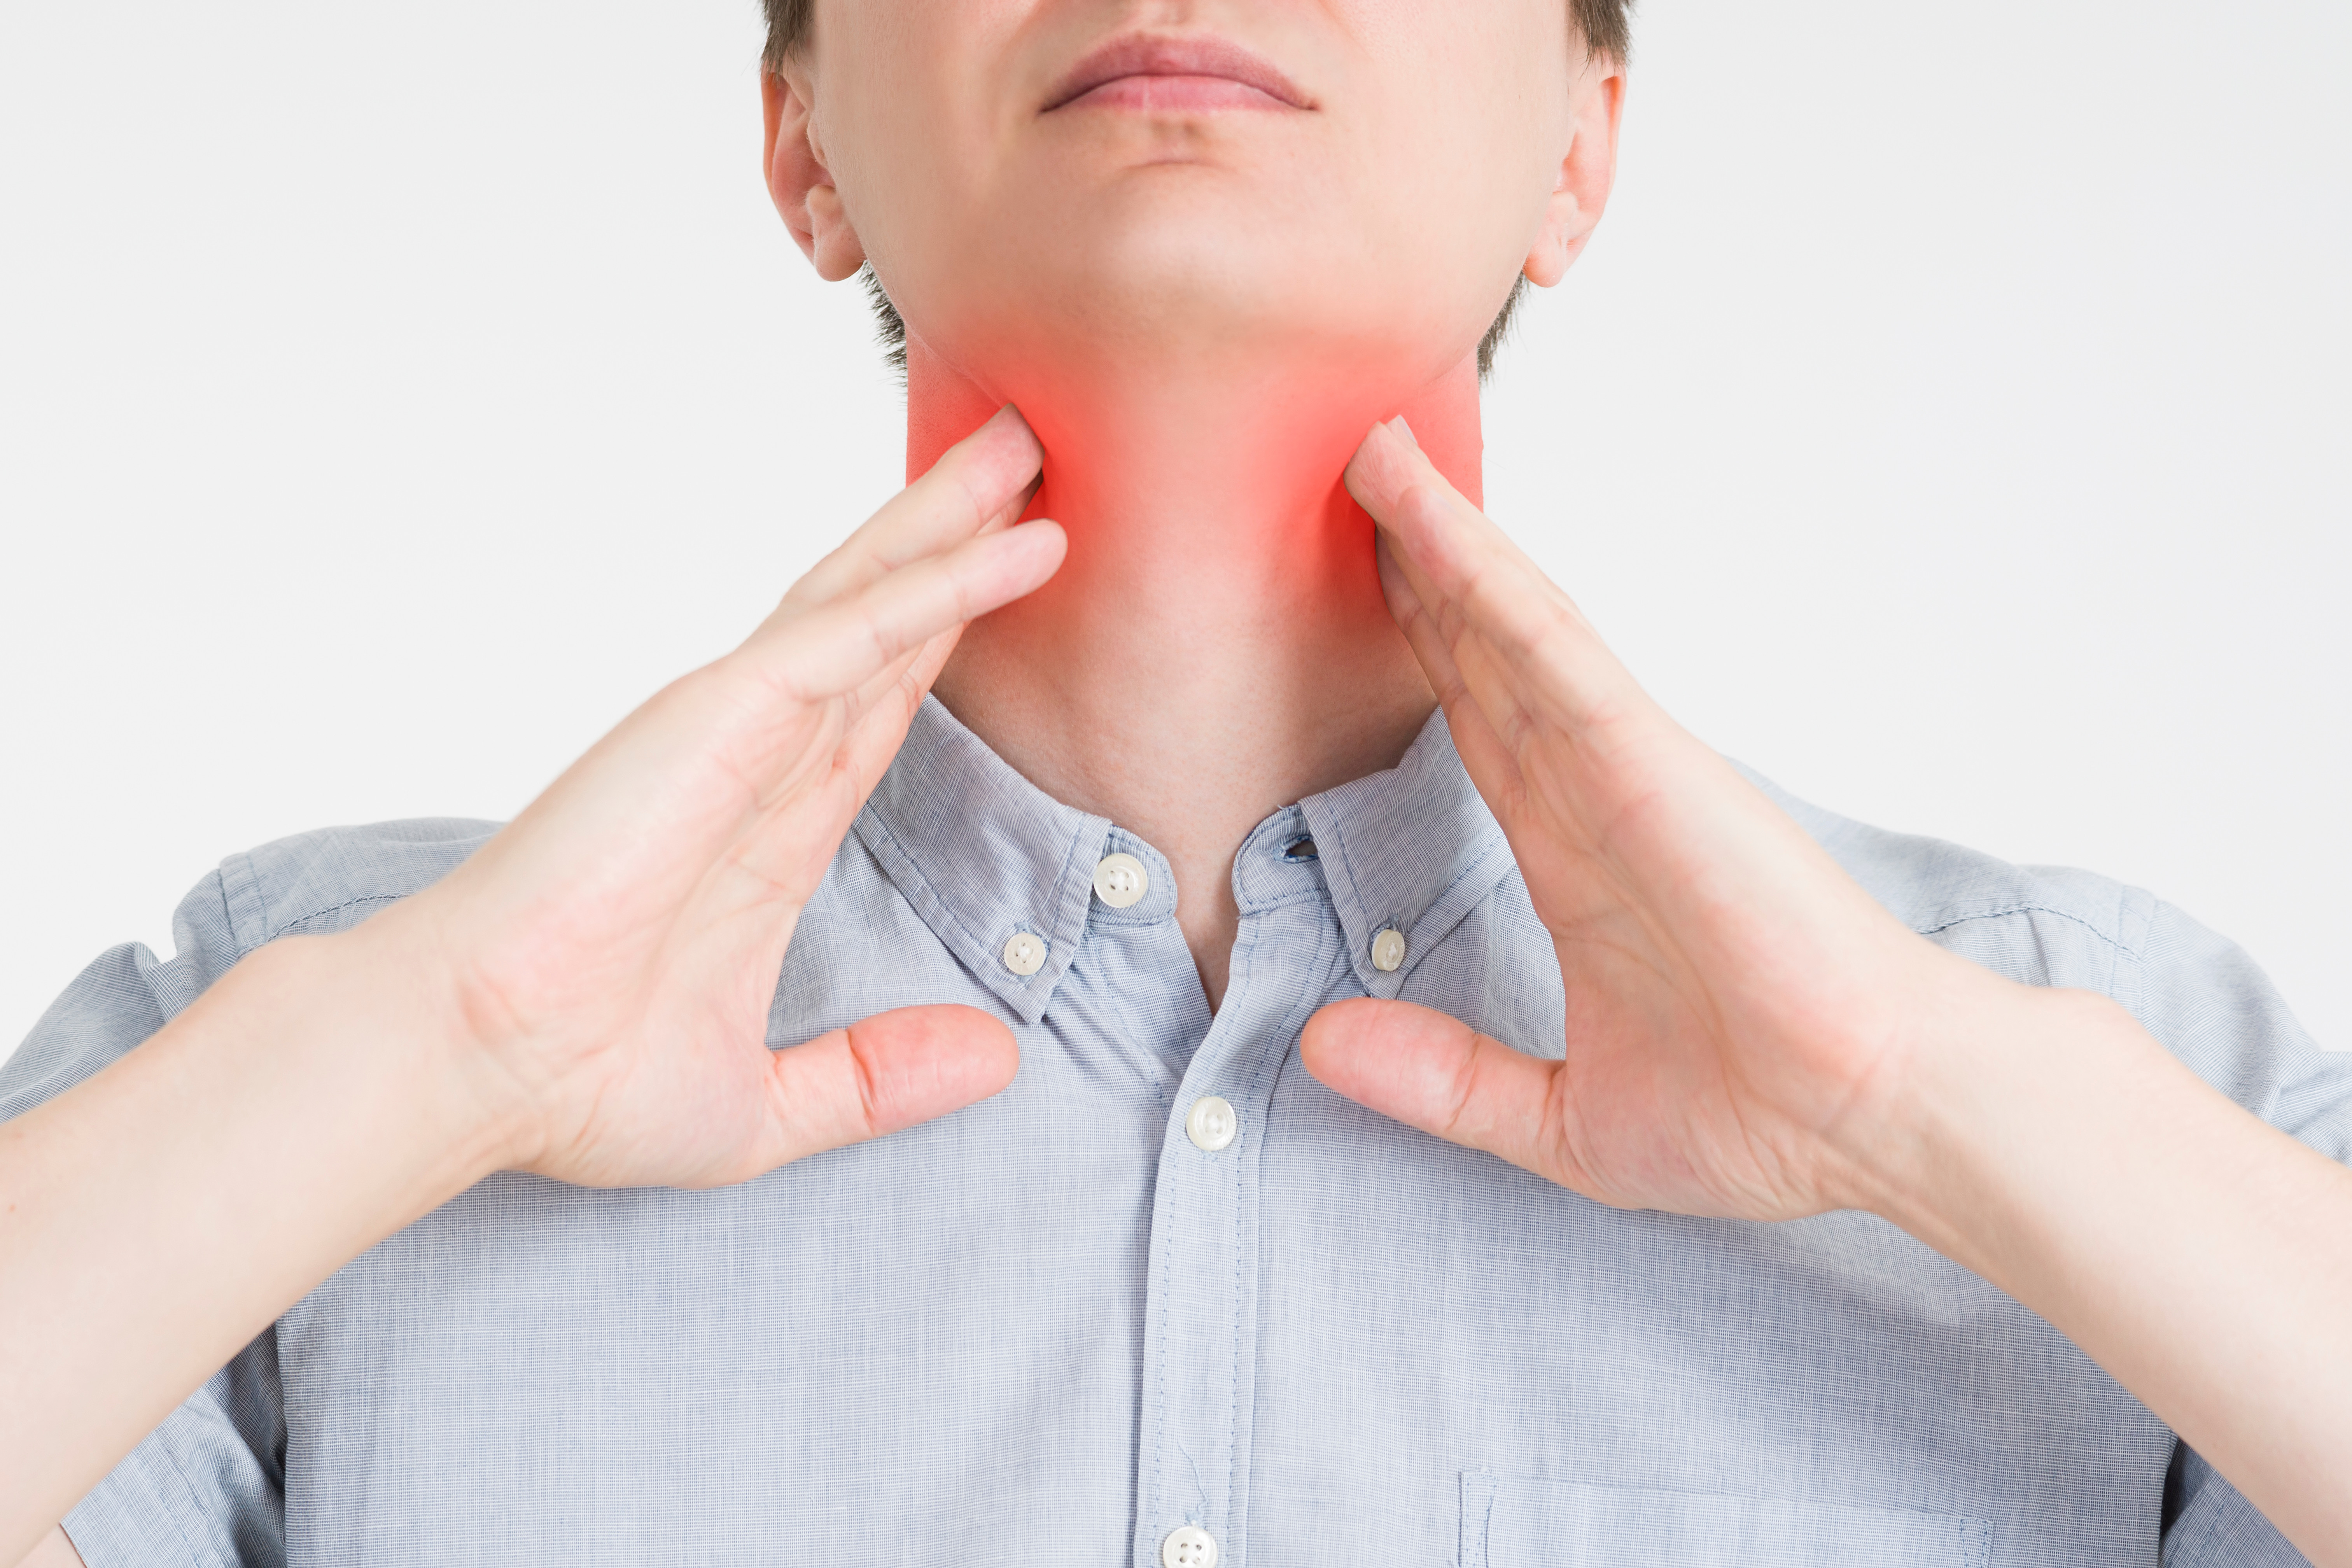 Having difficult swallowing is the most common symptom of oesophageal cancer